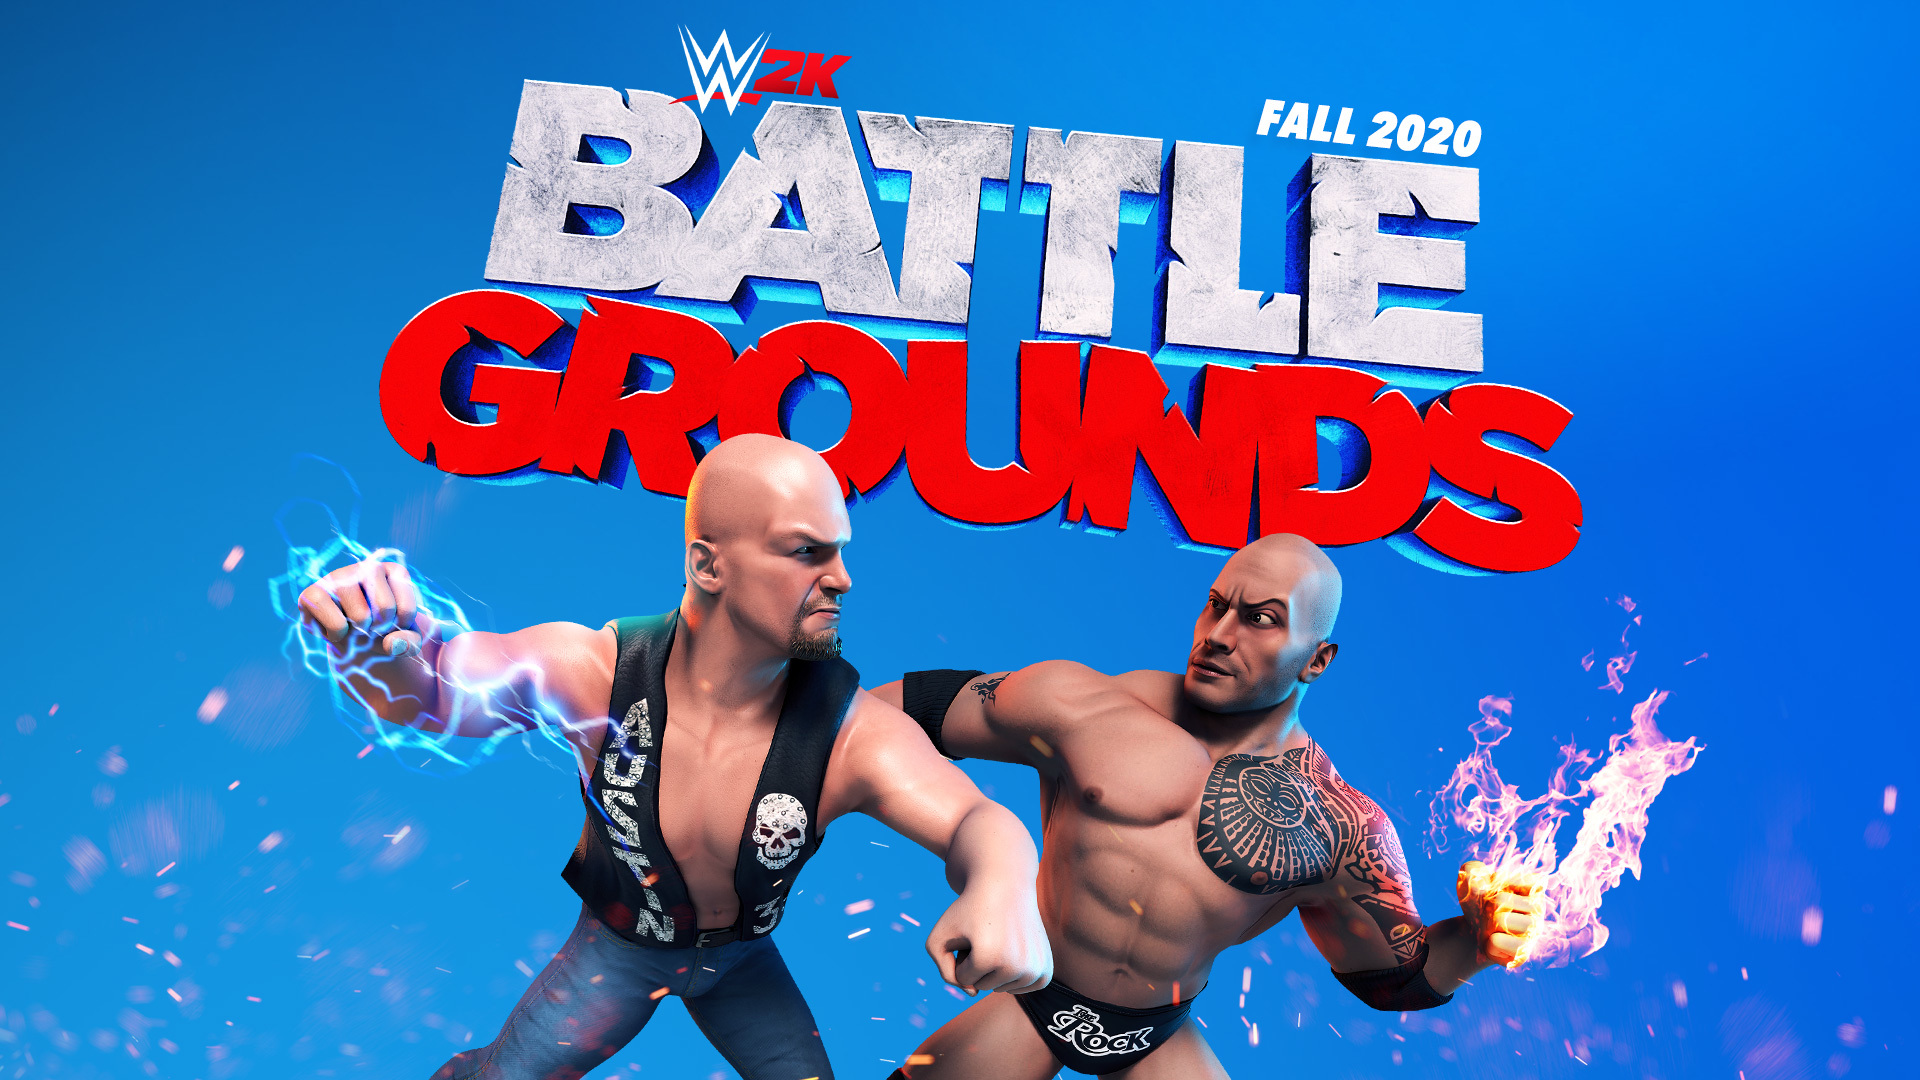 Latest WWE 2K Battlegrounds Update Adds New Wrestlers, Arenas, And More